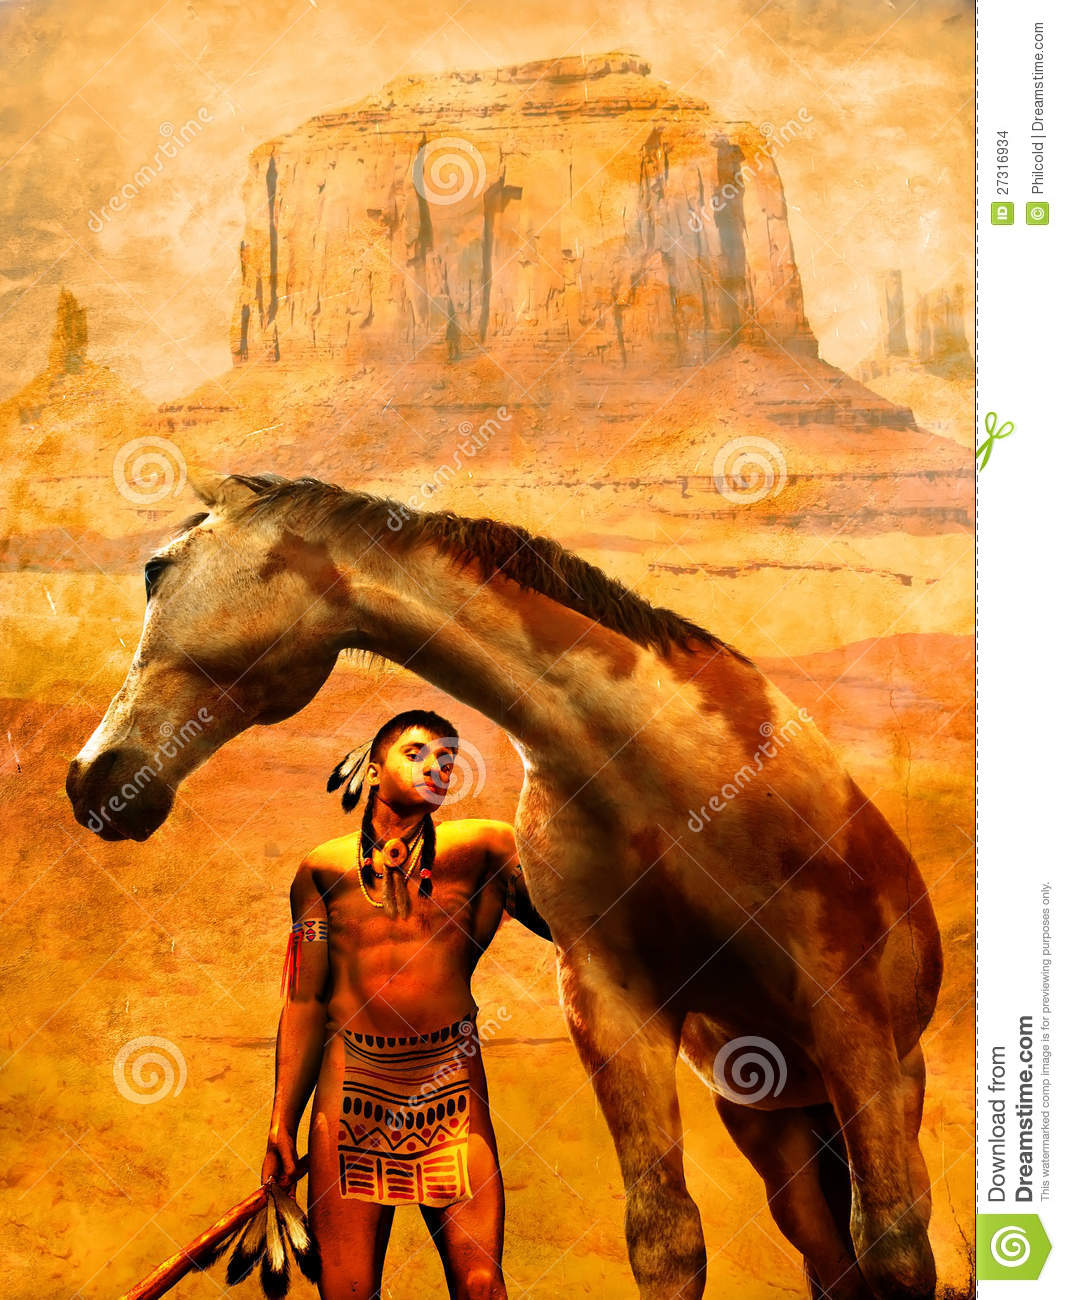 Horse Pictures Images Wallpapers Photos 2013  Native American